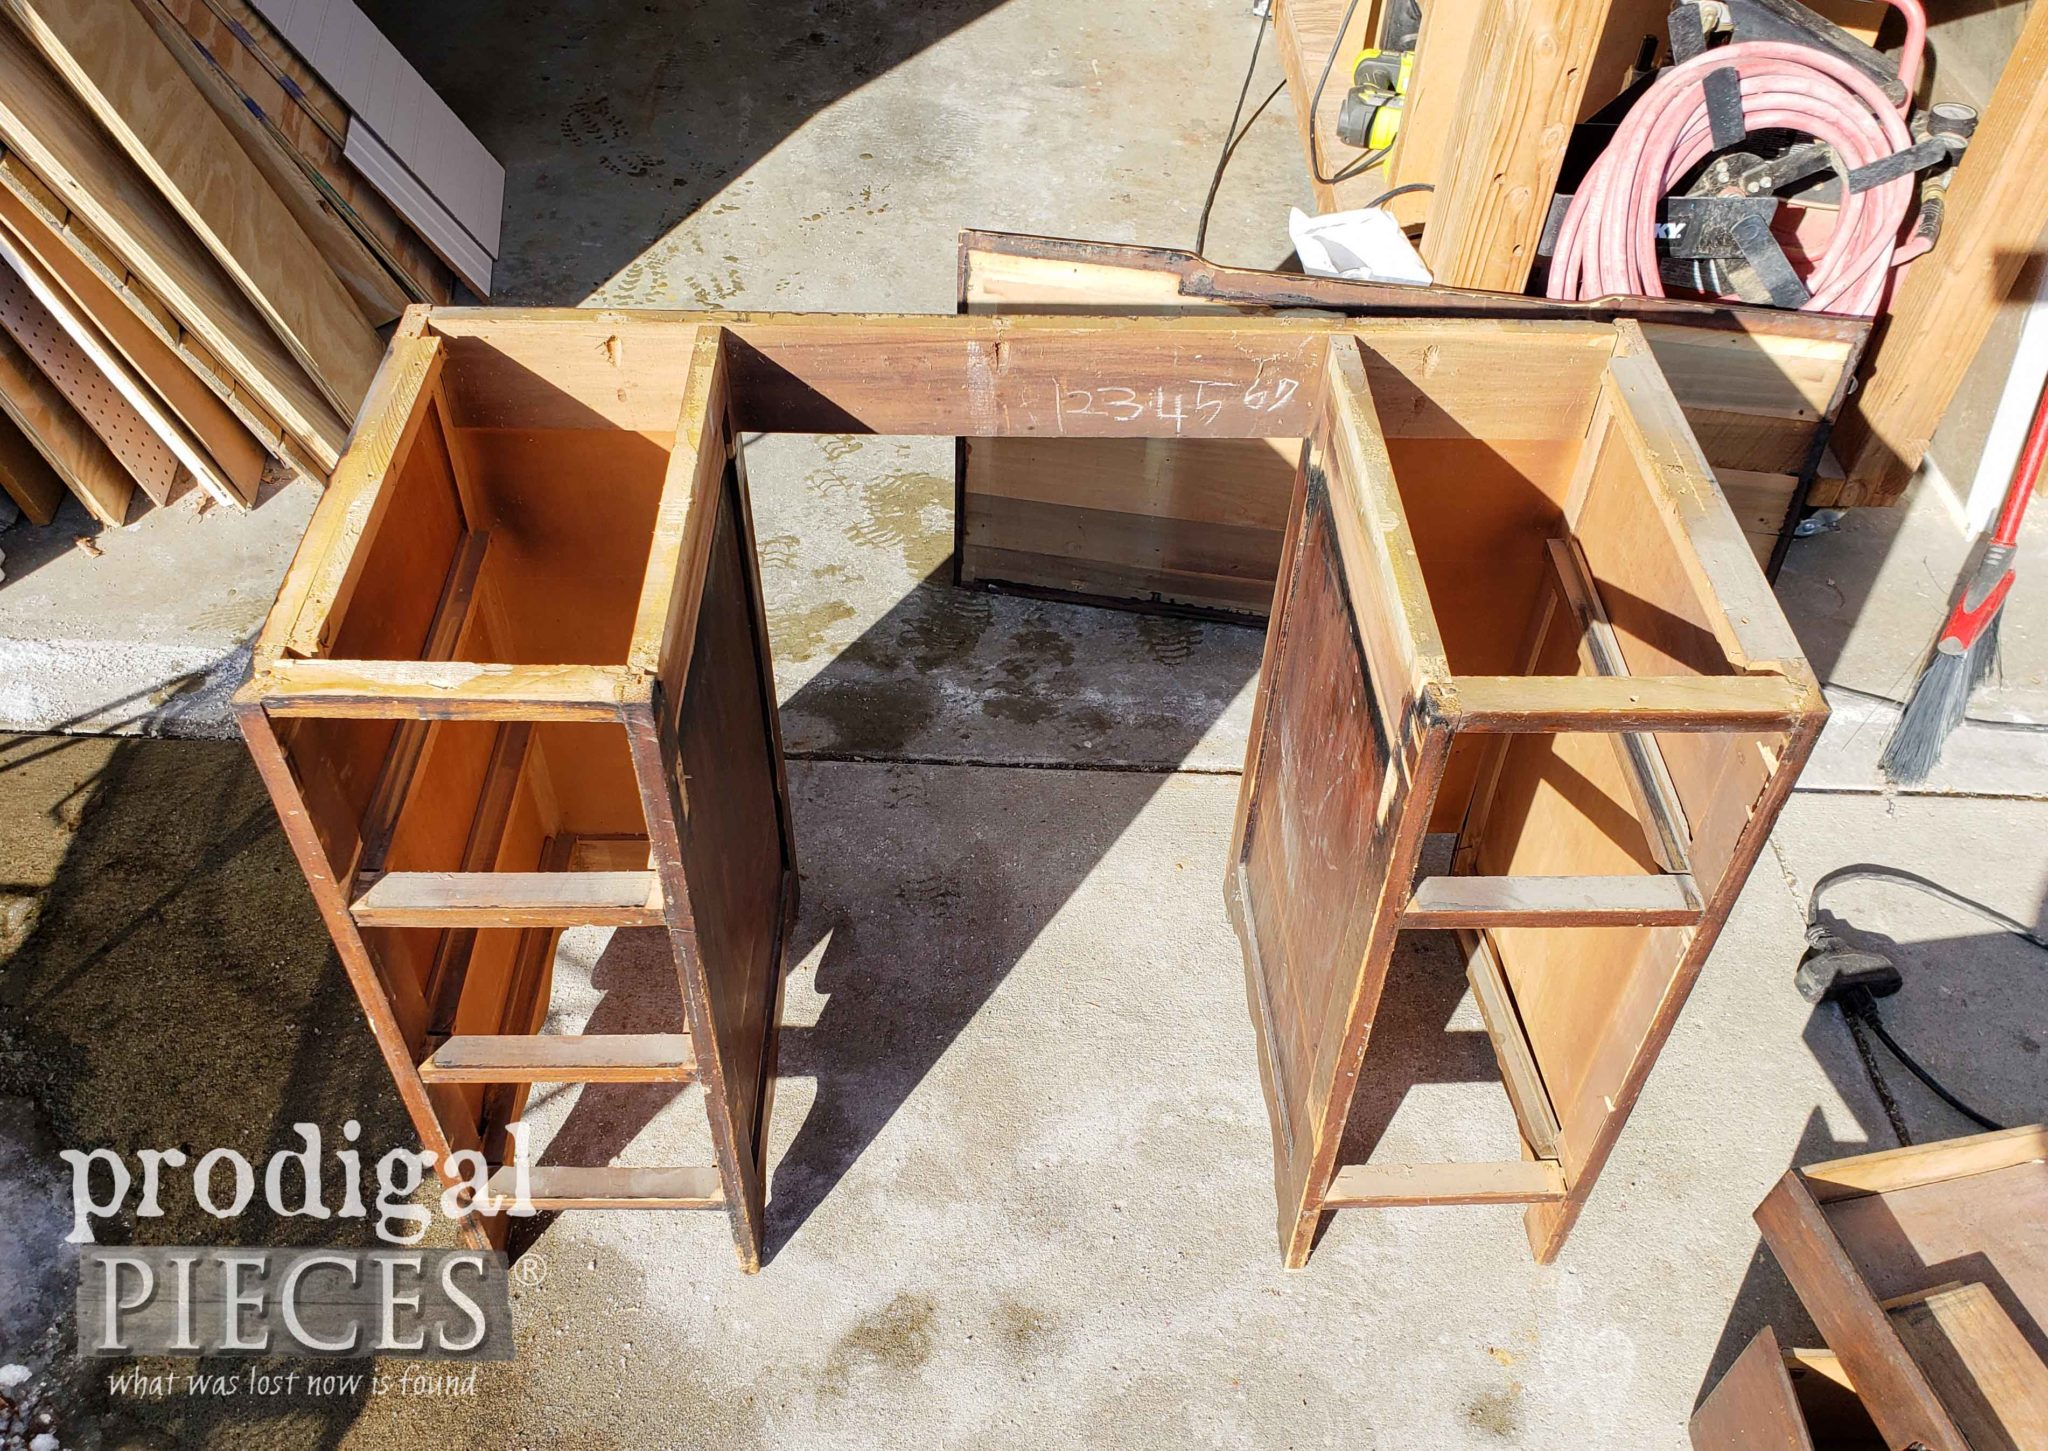 Antique Desk Top Removed to Make Nightstands | prodigalpieces.com